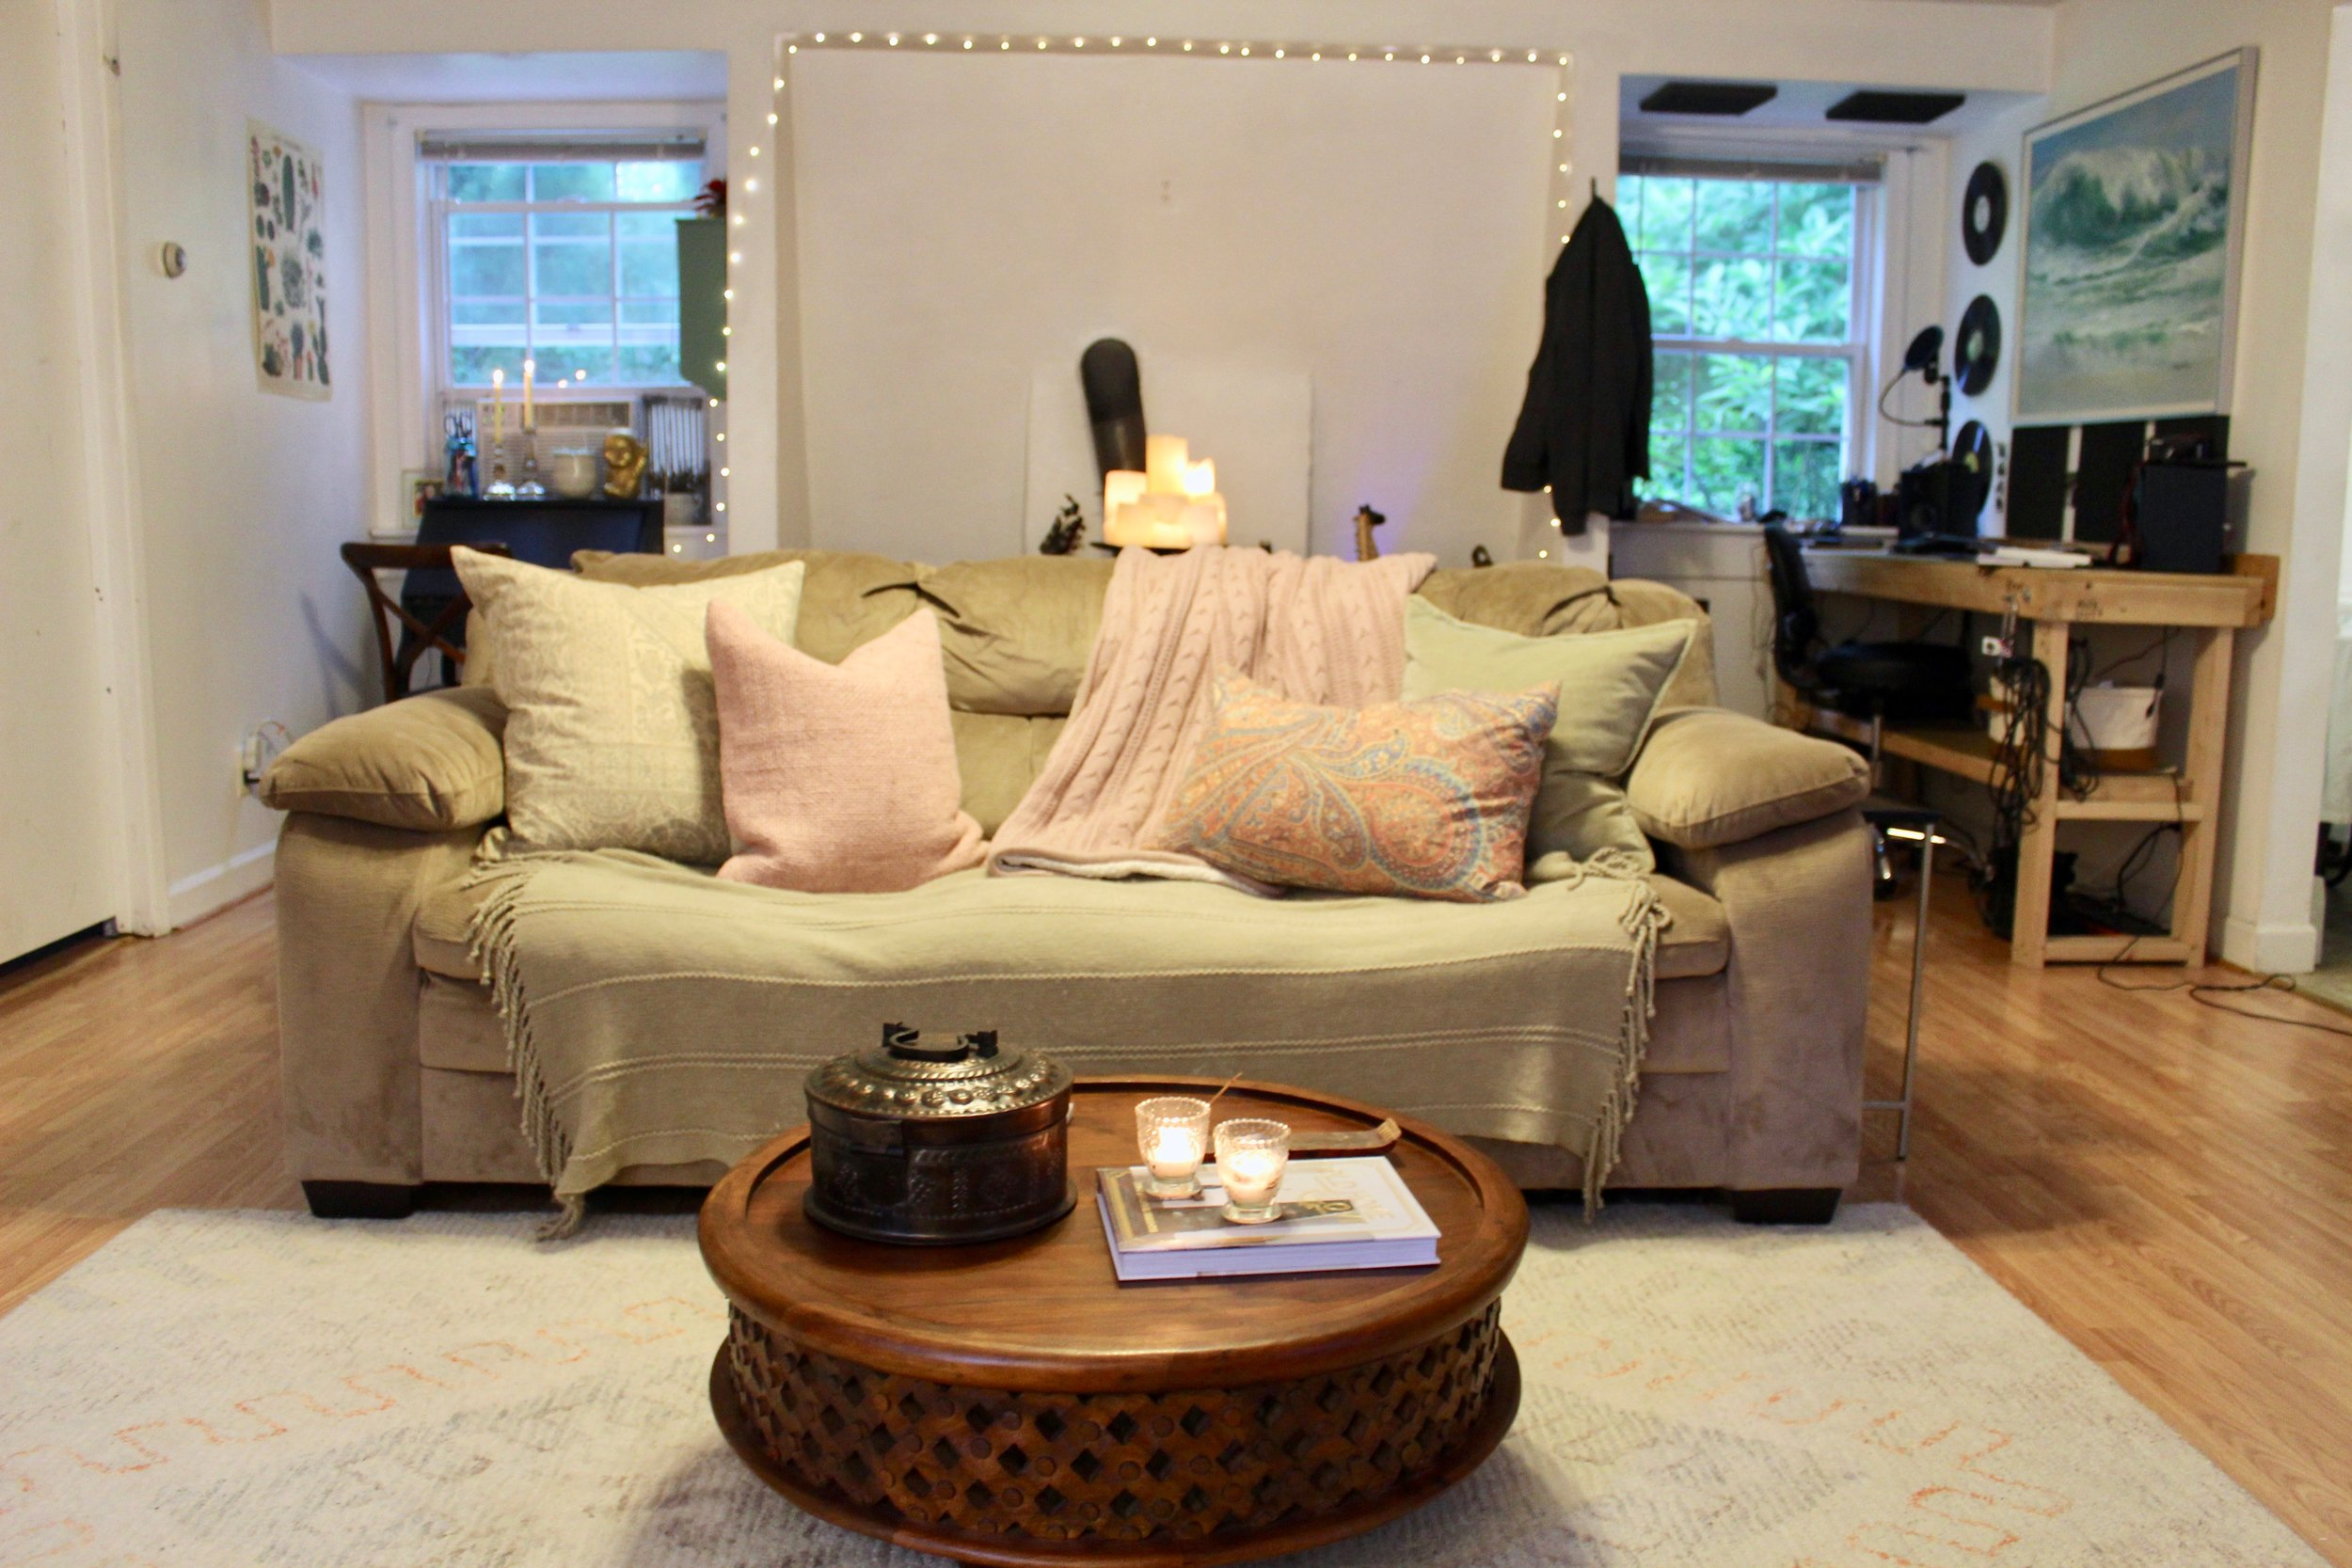 - I was able to switch up my living room look with a few simple changes, and more importantly without spending any money! I used pale pink & green pillows on the sofa for a summer-time vibe, and added in the paisley lumbar pillow to tie in the pillows to the colors in my rug.